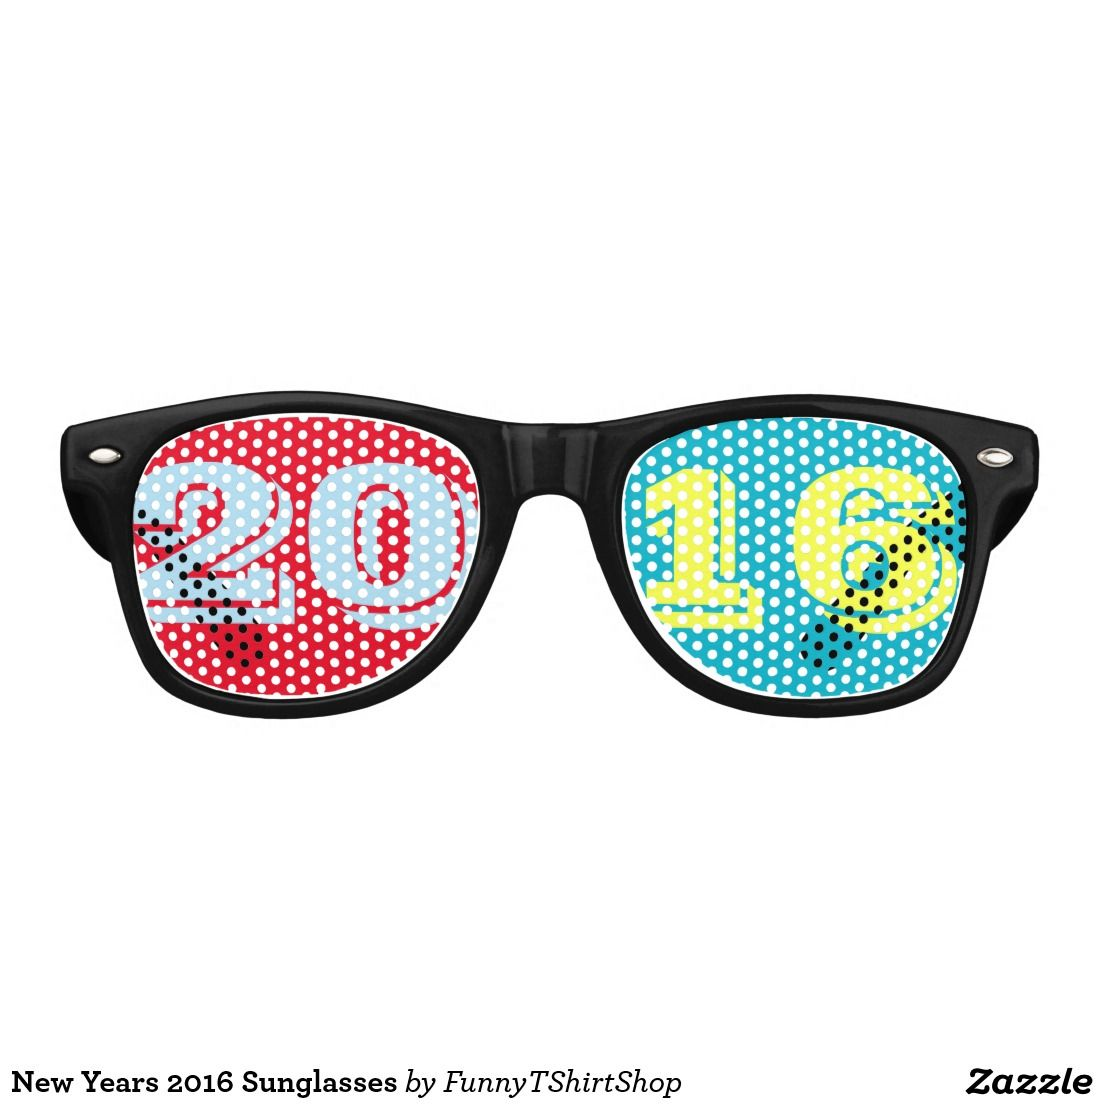 New Years 2016 Sunglasses Sunglasses, New year 2020